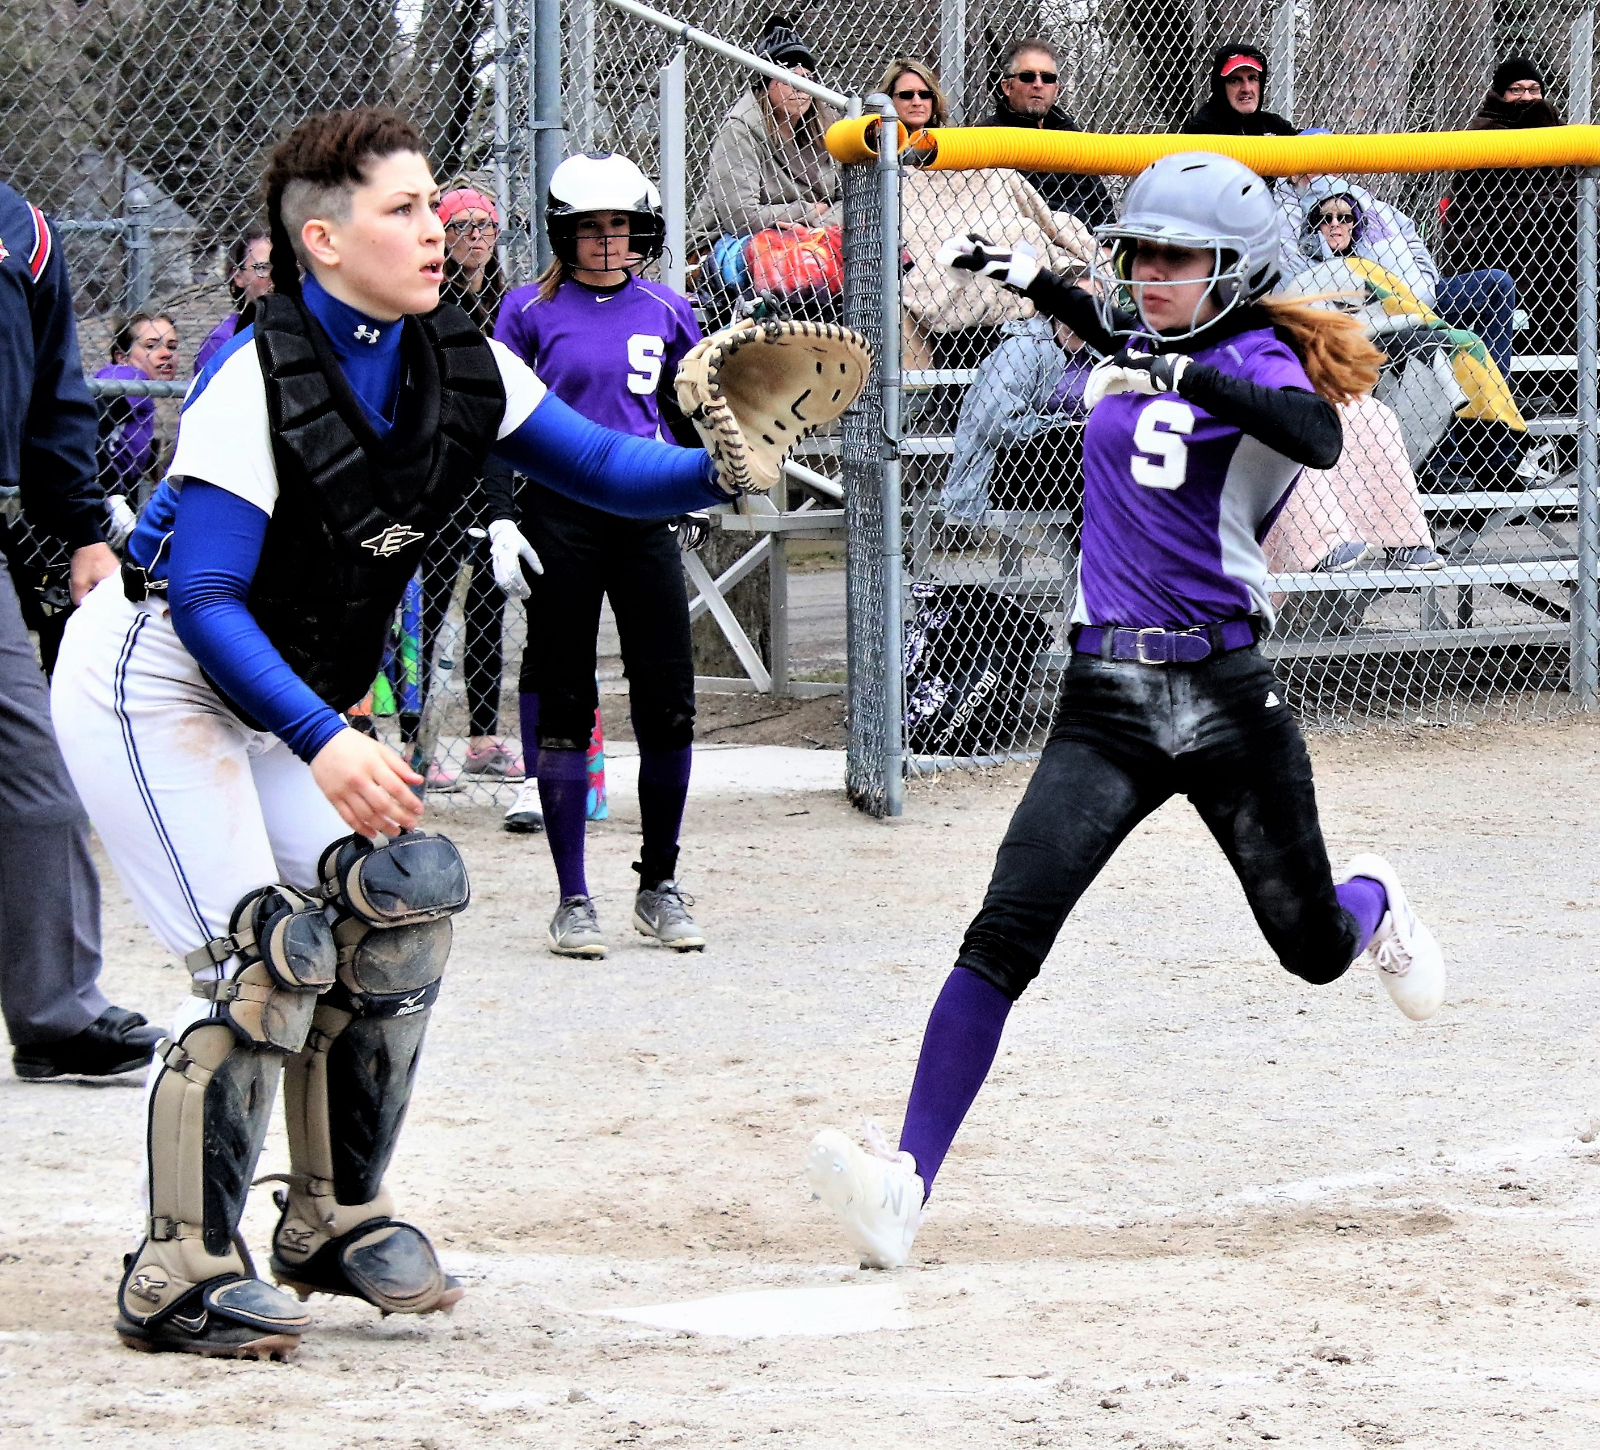 Emma Operaz scores ahead of the incoming throw in Swanton's 20-10 win over the Northwood Rangers